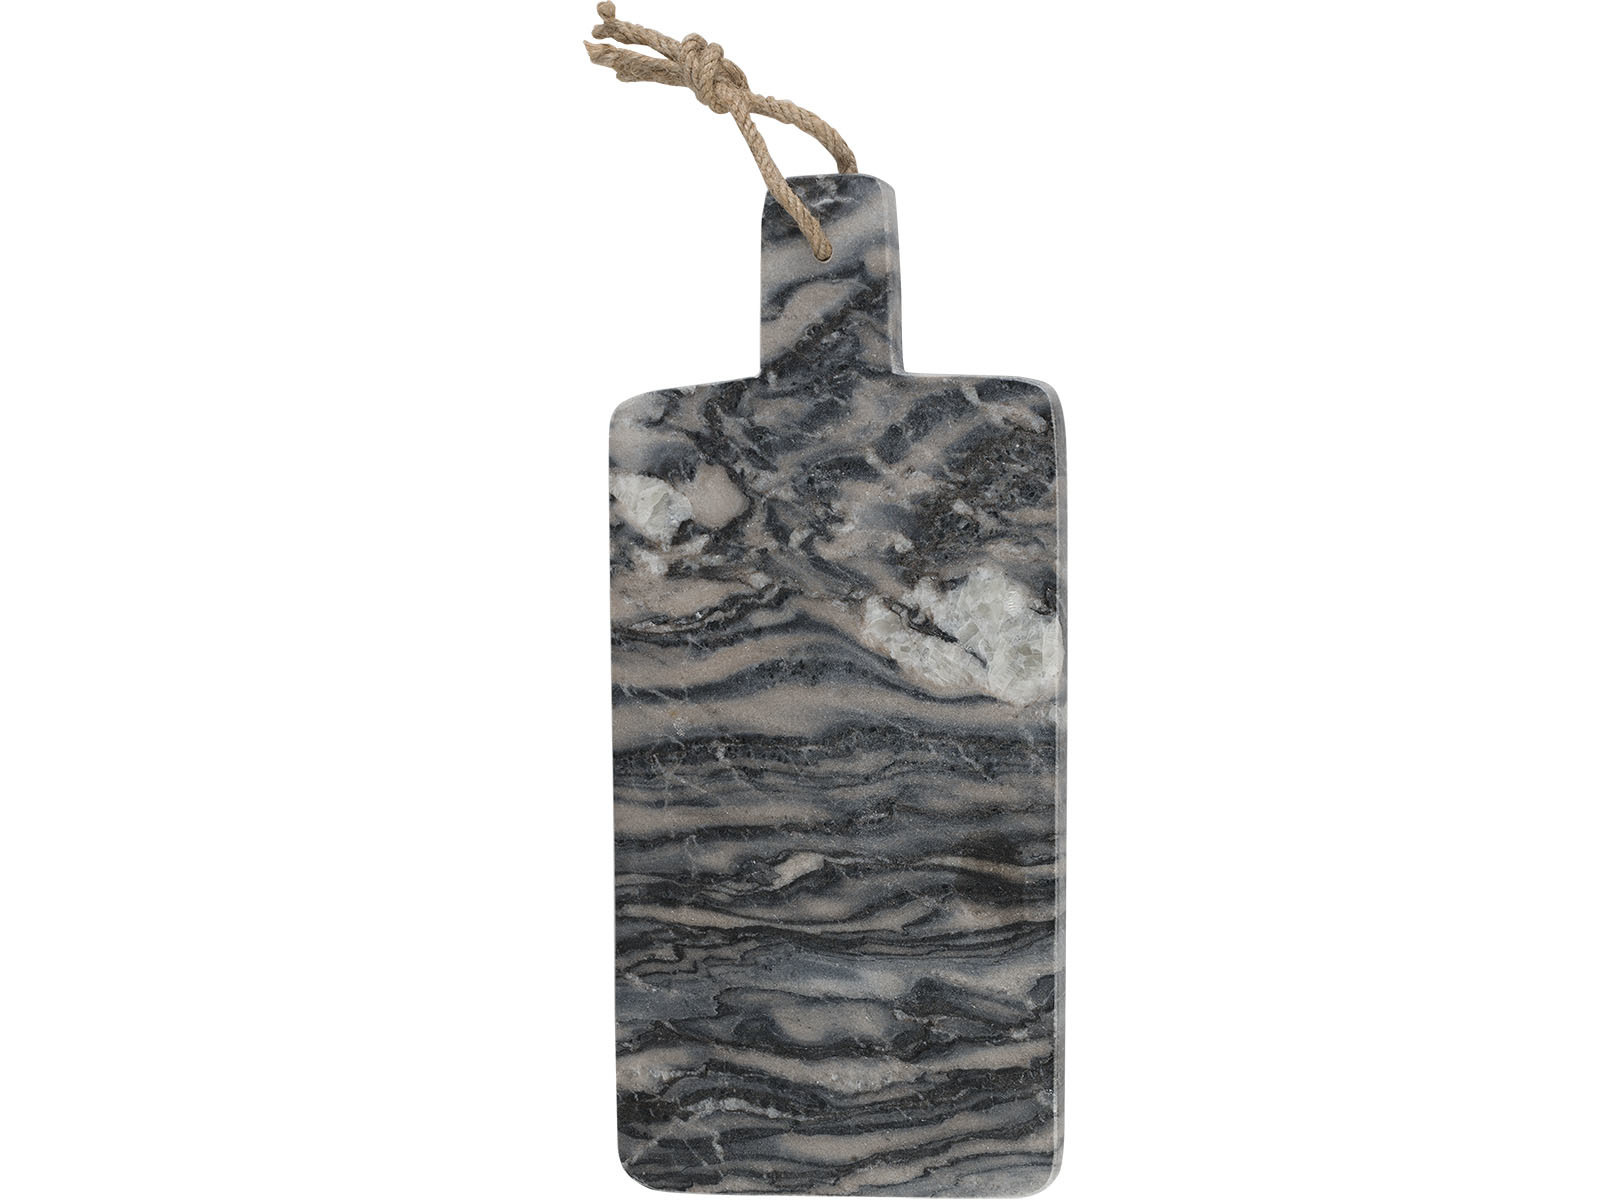 Creative Tops Naturals Marble Serve Board Grey